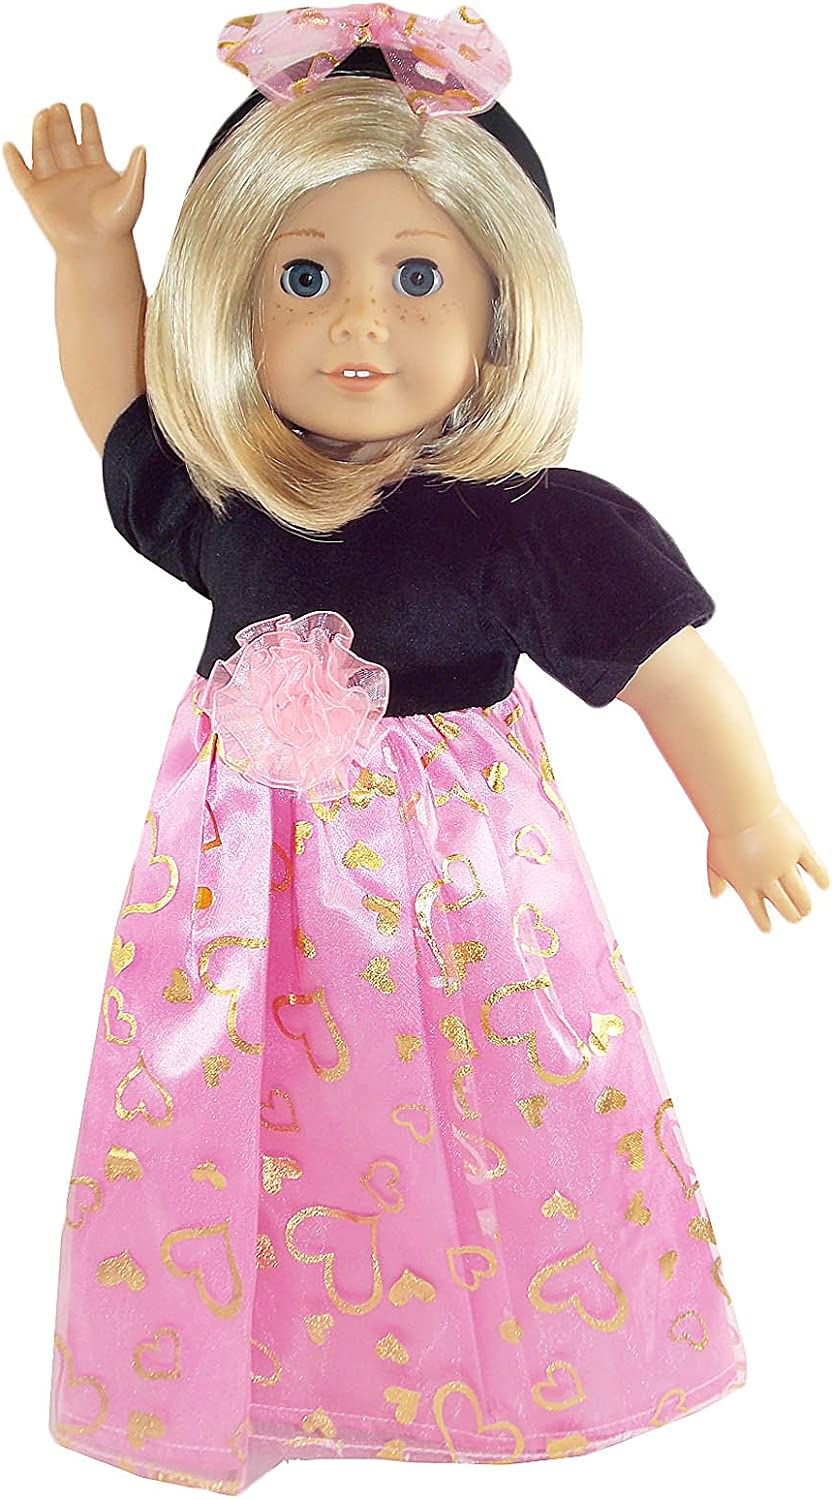 Little Black Dress with Pink Hearts Print for 18 inch Doll